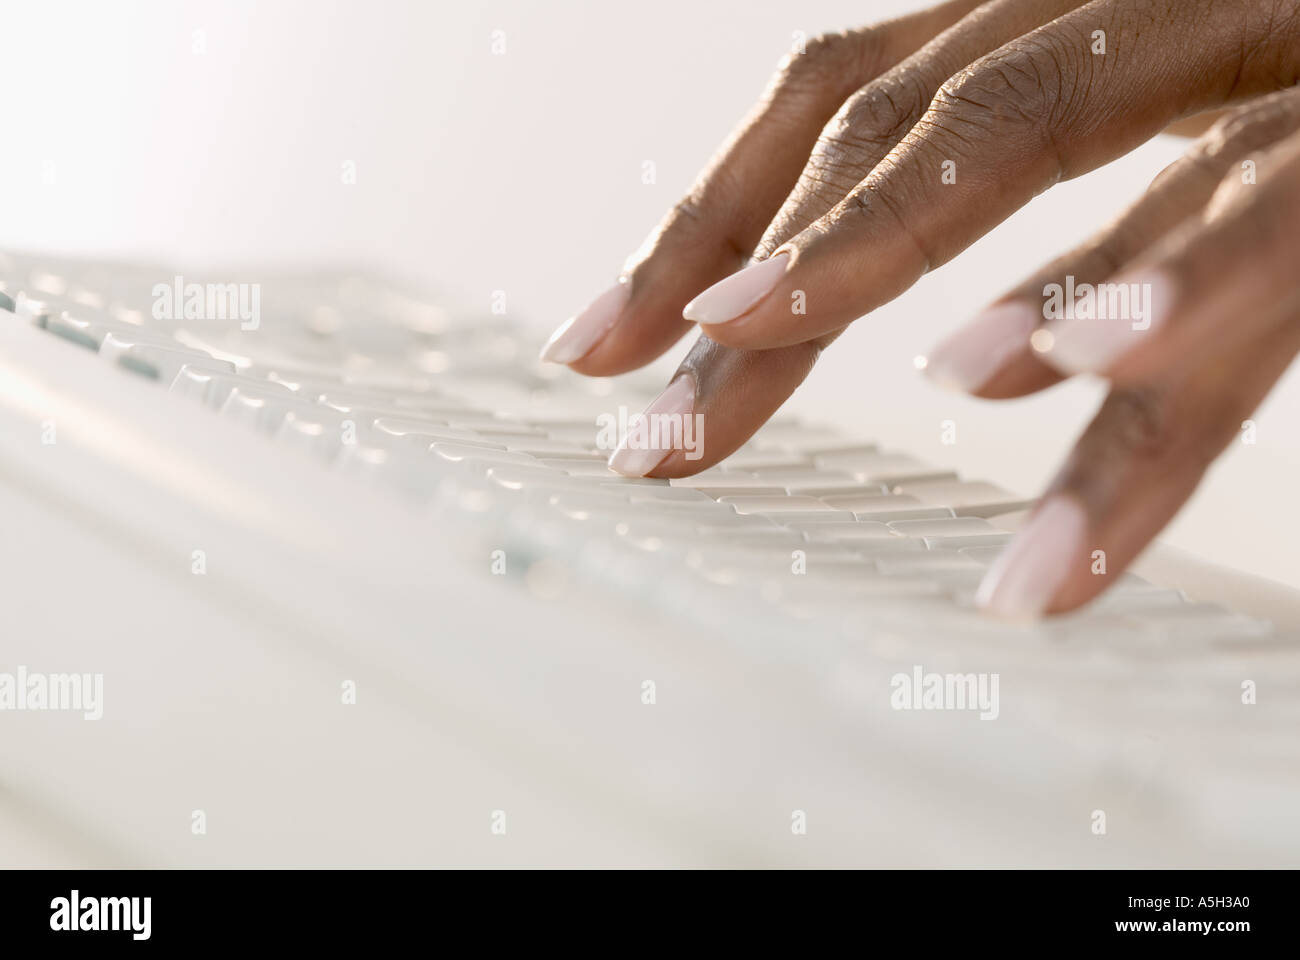 Female hands on a computer keyboard - Stock Image